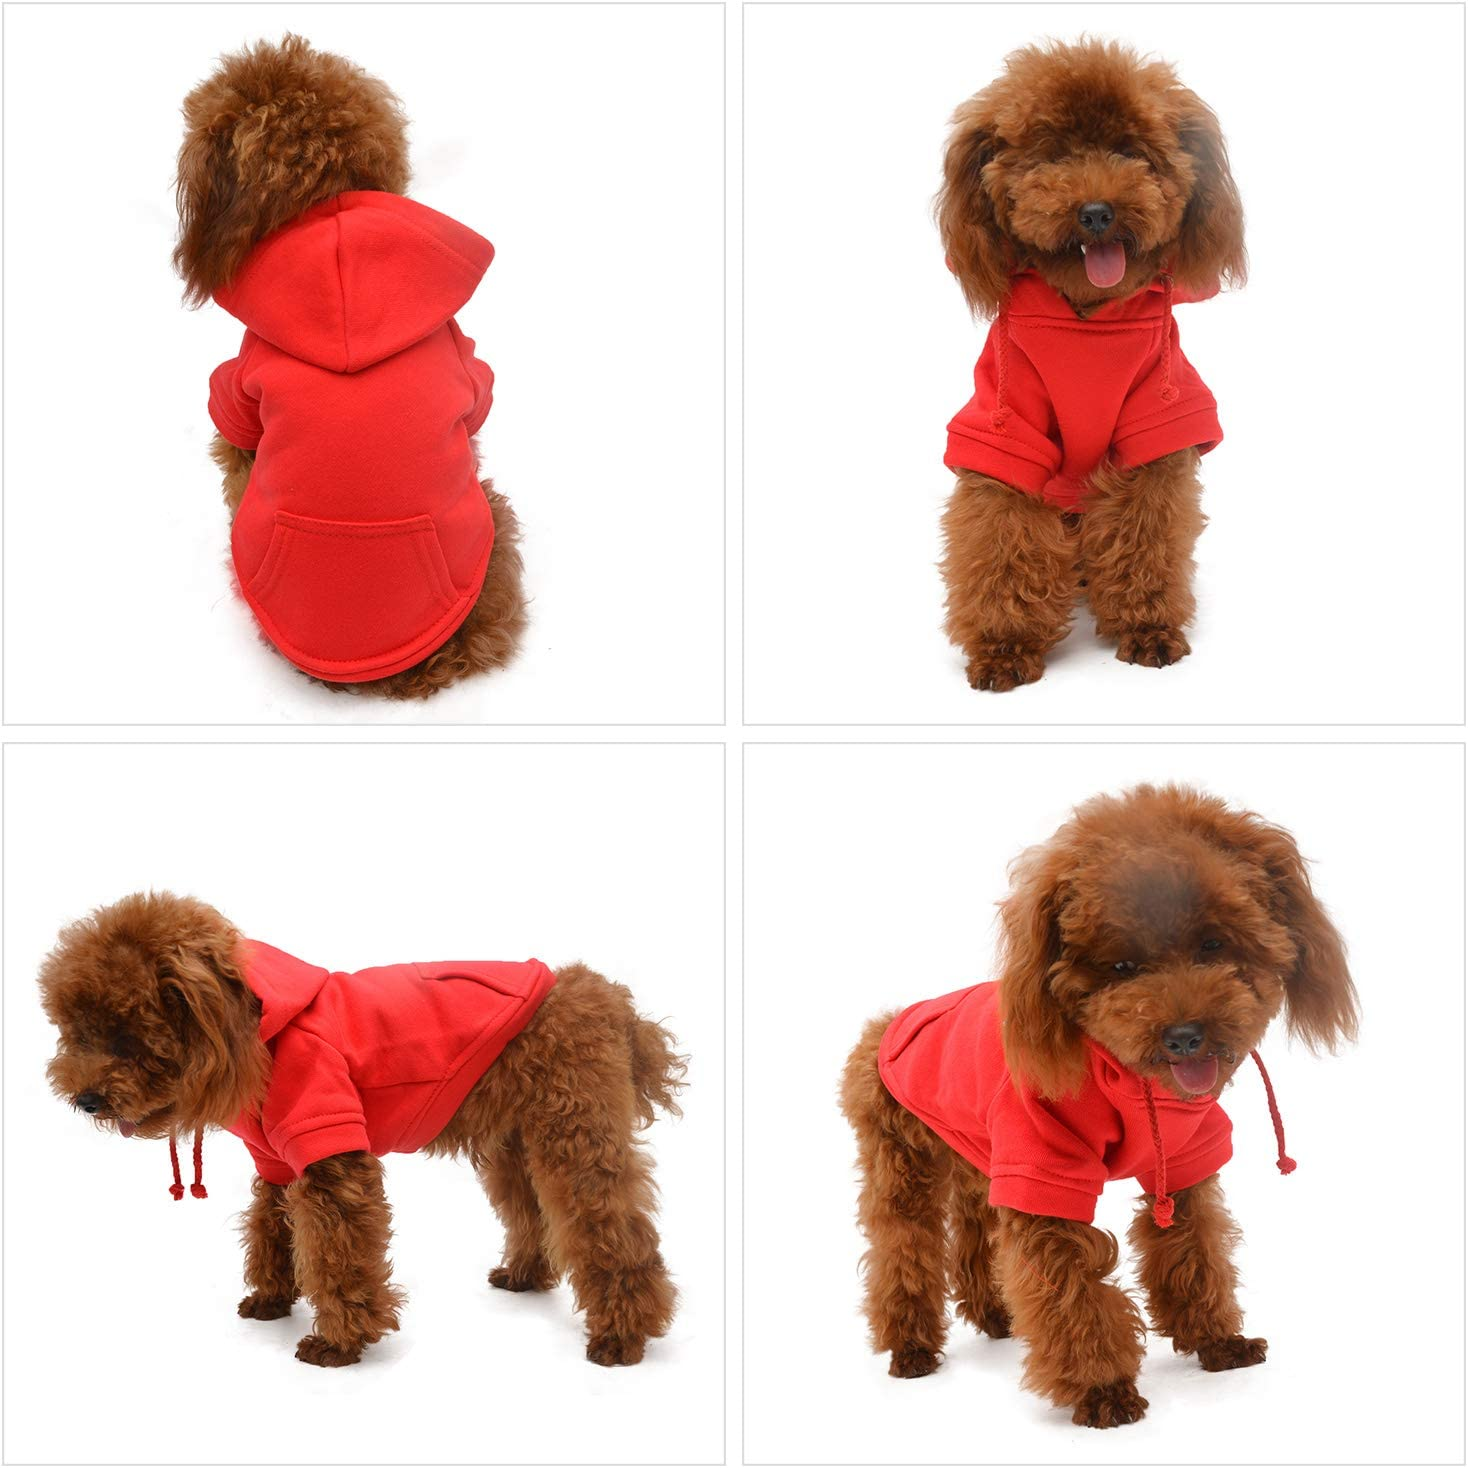 S, Red Pet Clothing Clothes Dog Coat Hoodies Winter Autumn Sweatshirt for Small Middle Large Size Dogs 11 Colors 100/% Cotton 2018 New